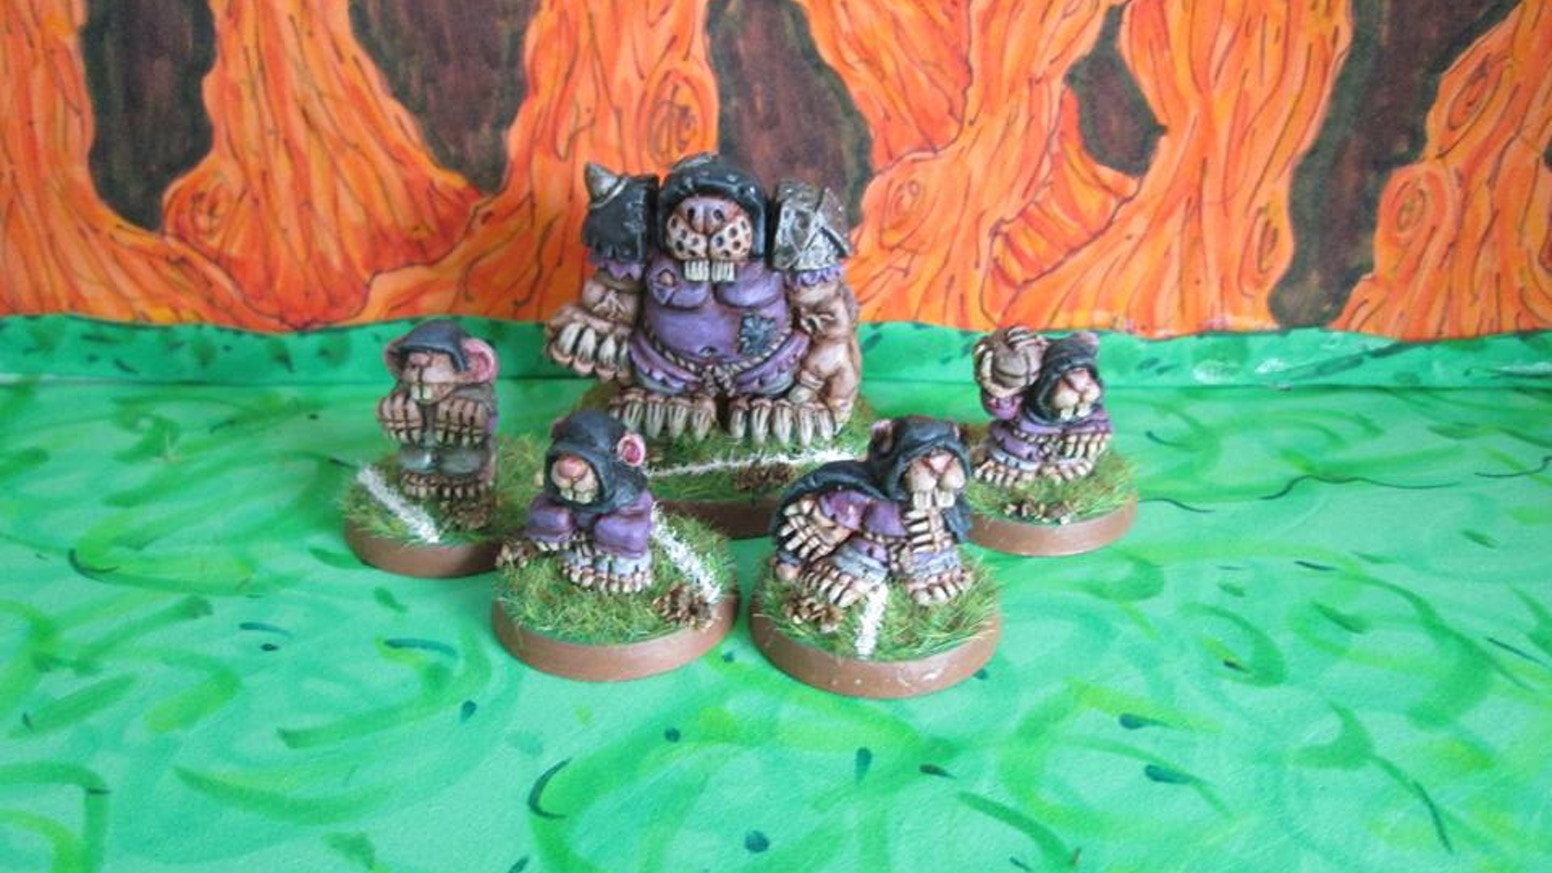 A bunch of 28mm scale rat people for using in miniature wargames.